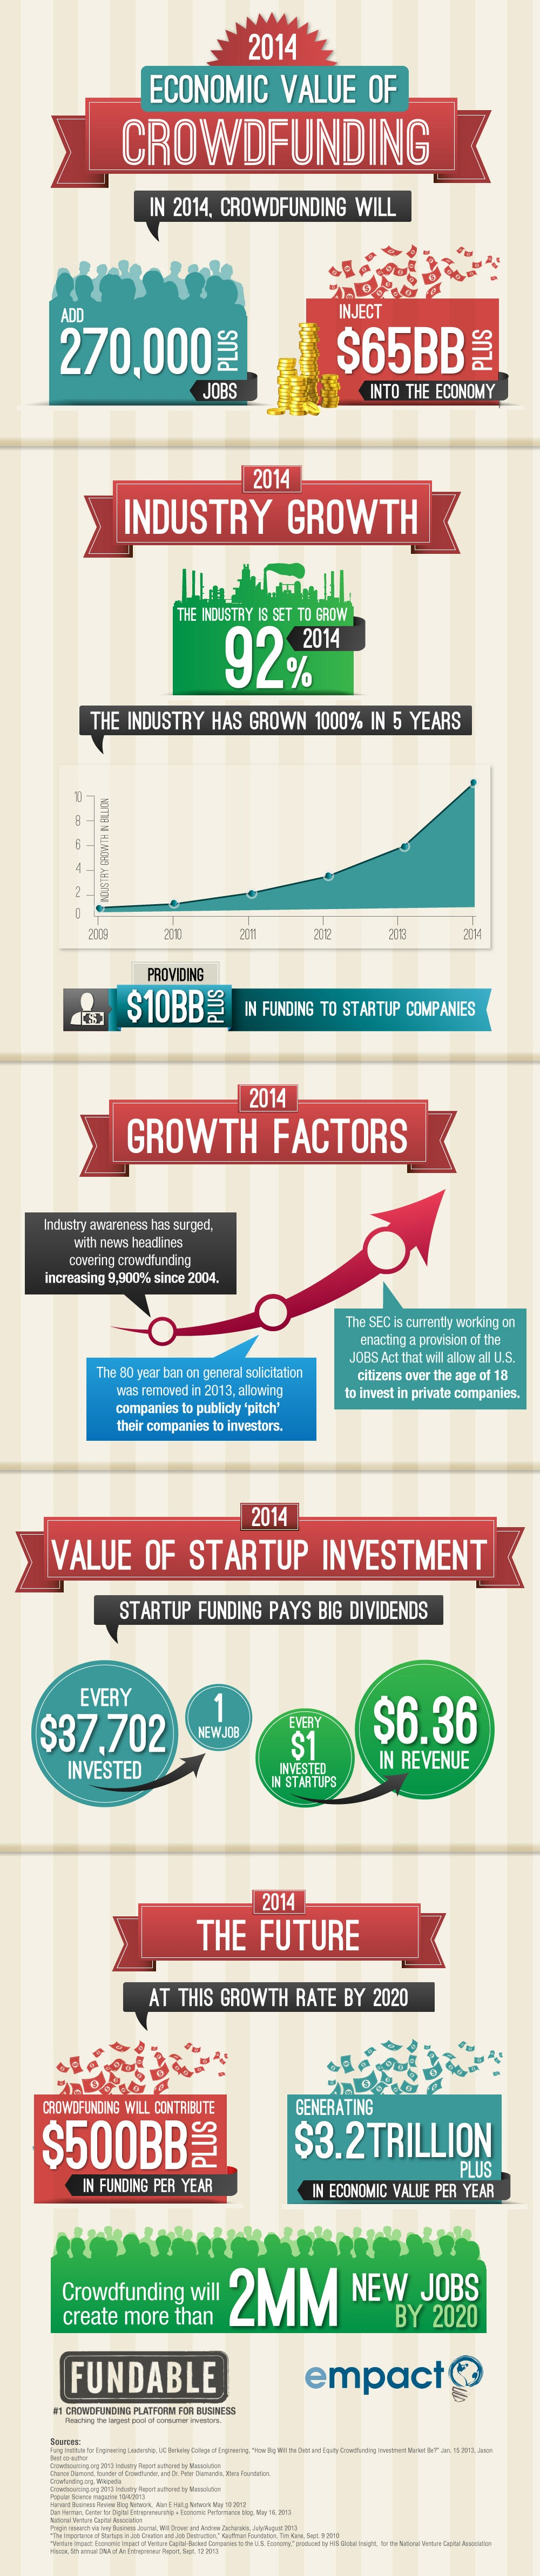 Crowdfunding Seen Providing $65 Billion Boost to the Global Economy in 2014 (Infographic)